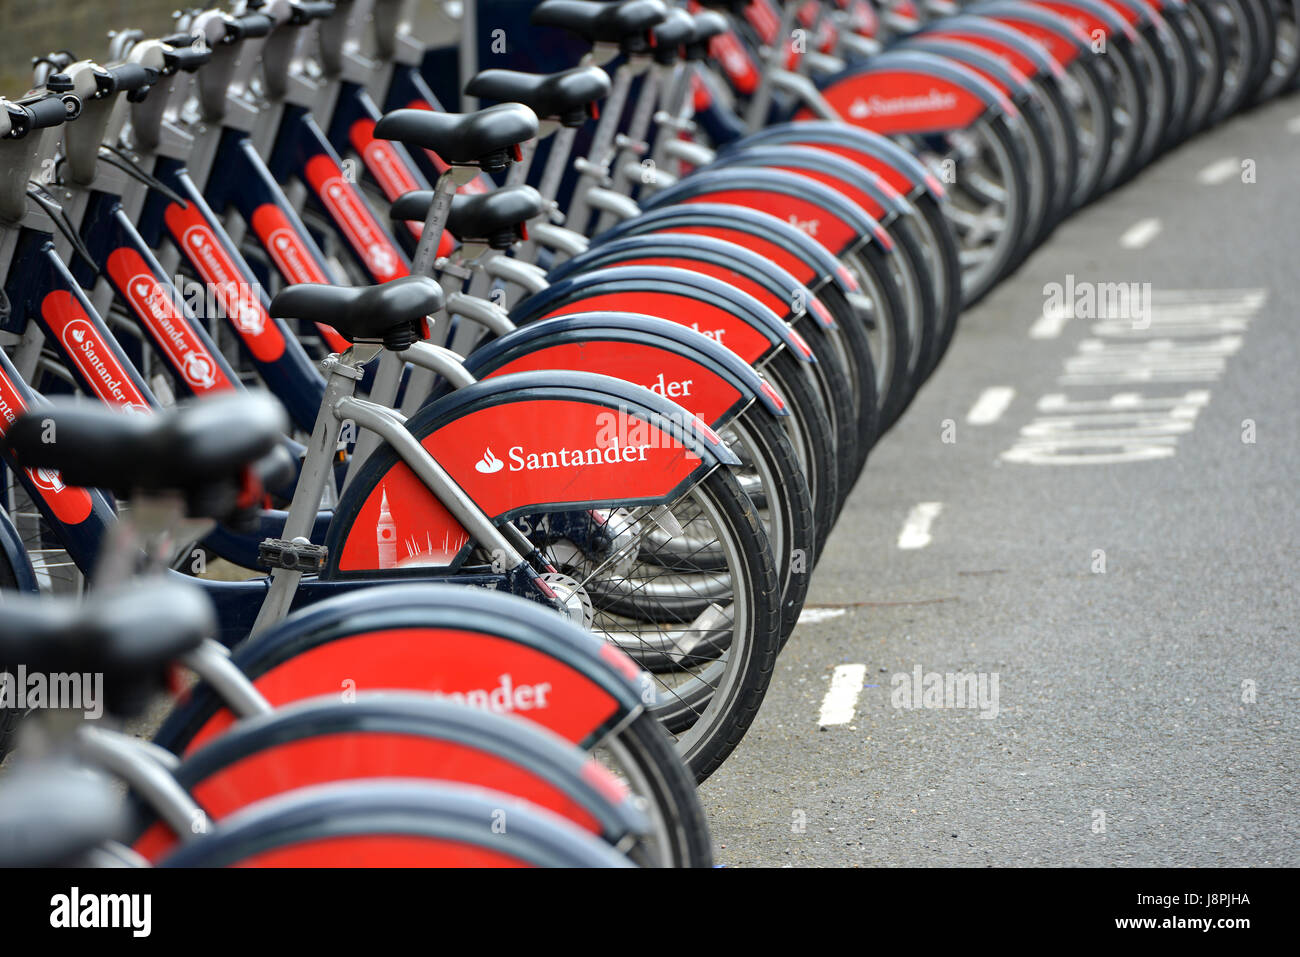 Santander cycles, or Boros Bikes, in Oval, London - Stock Image